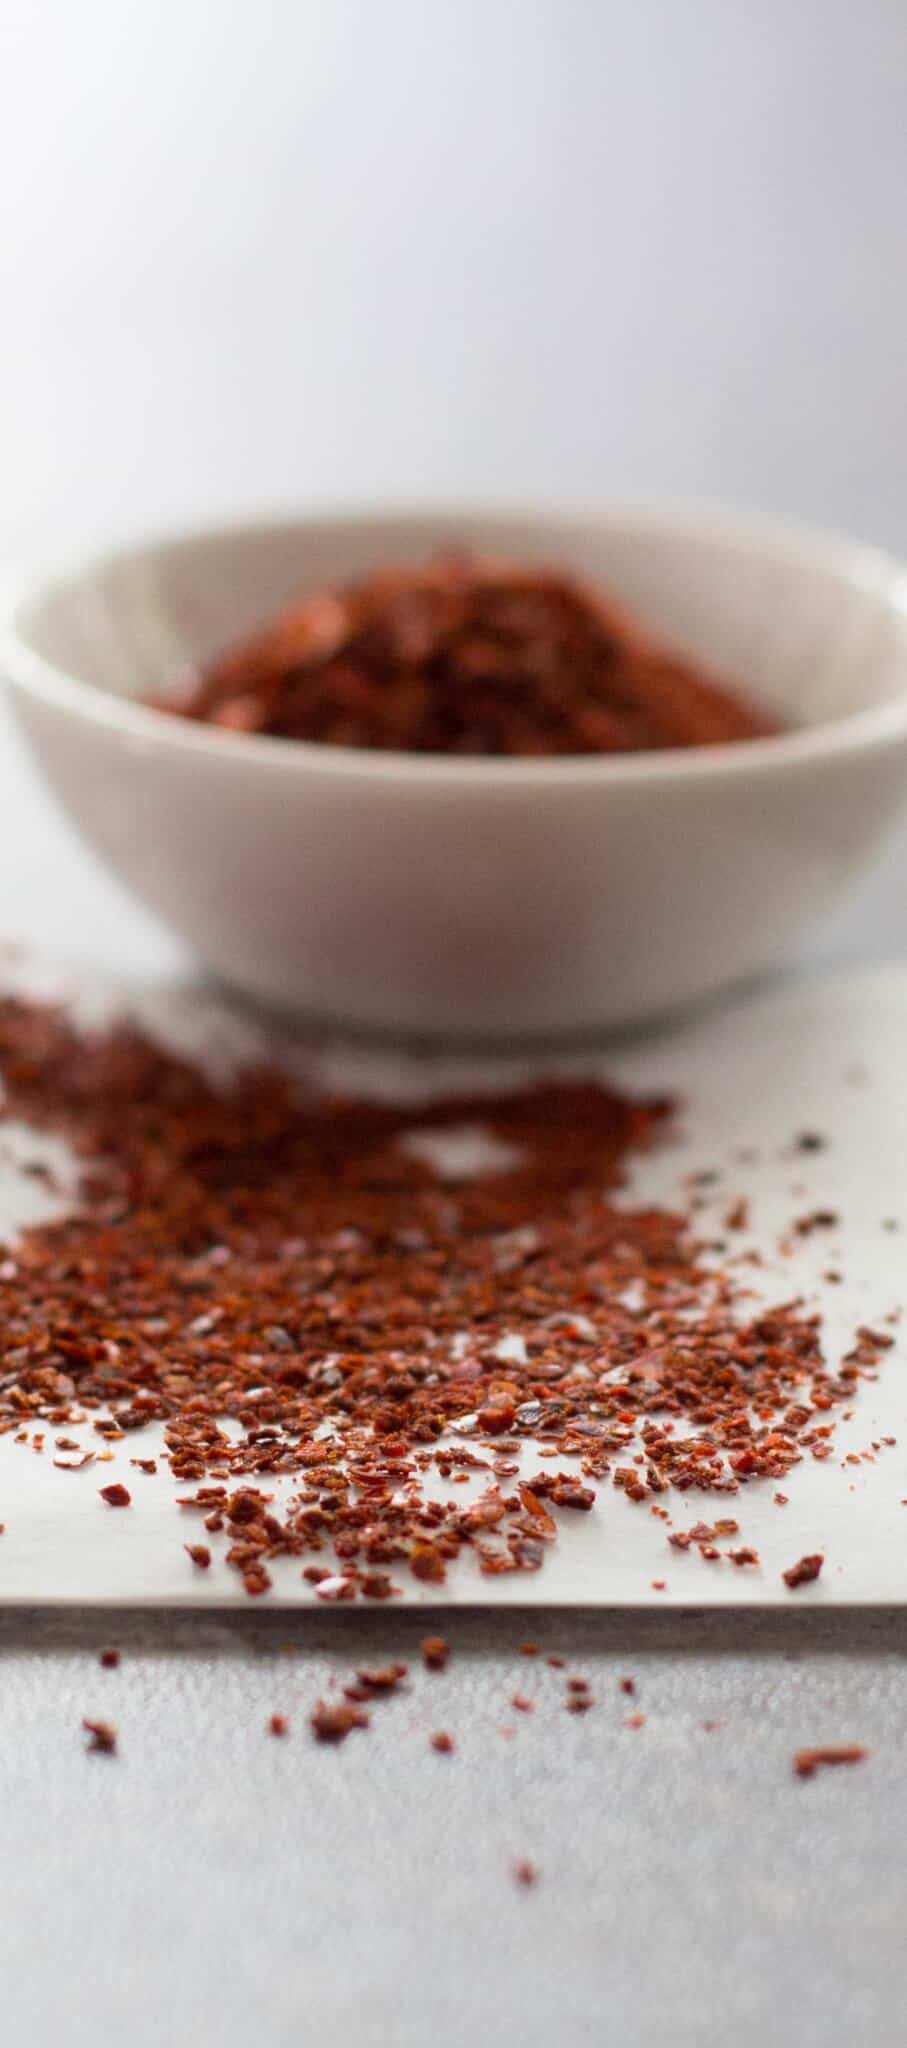 Aleppo pepper scattered and piled into a small bowl